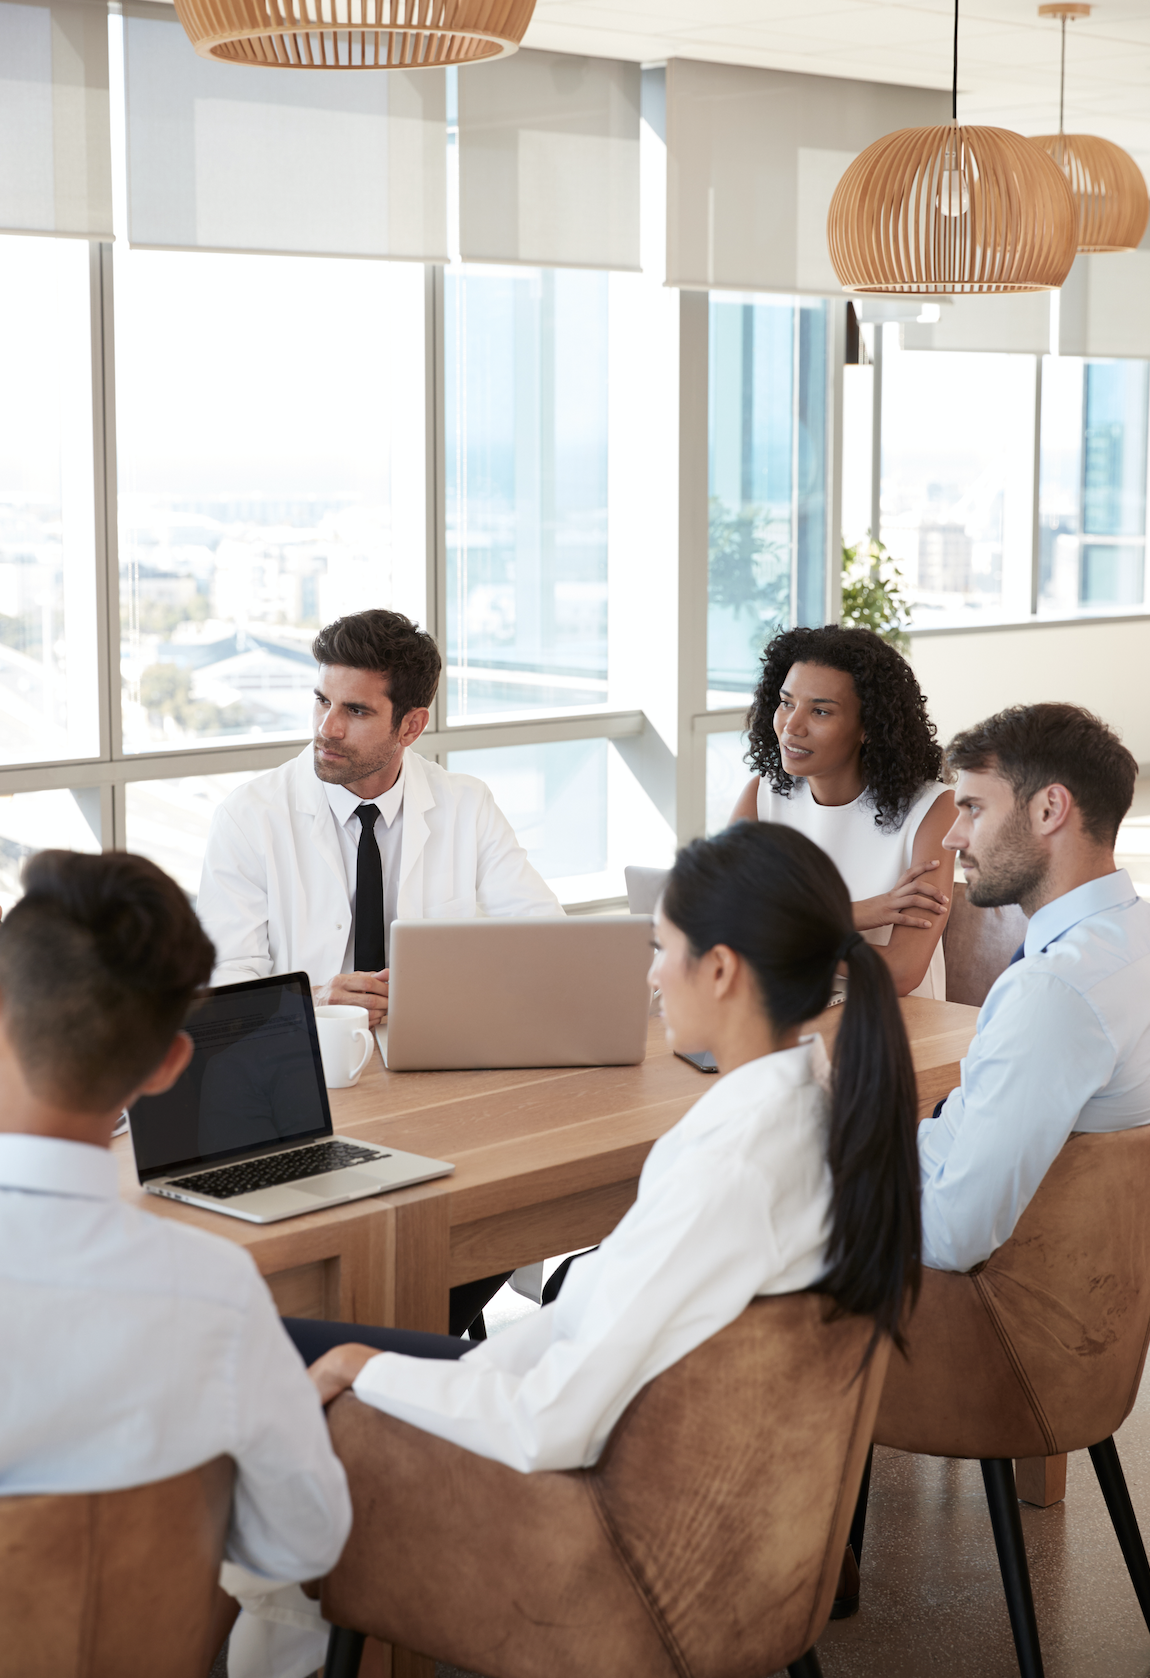 Doctors at a conference table